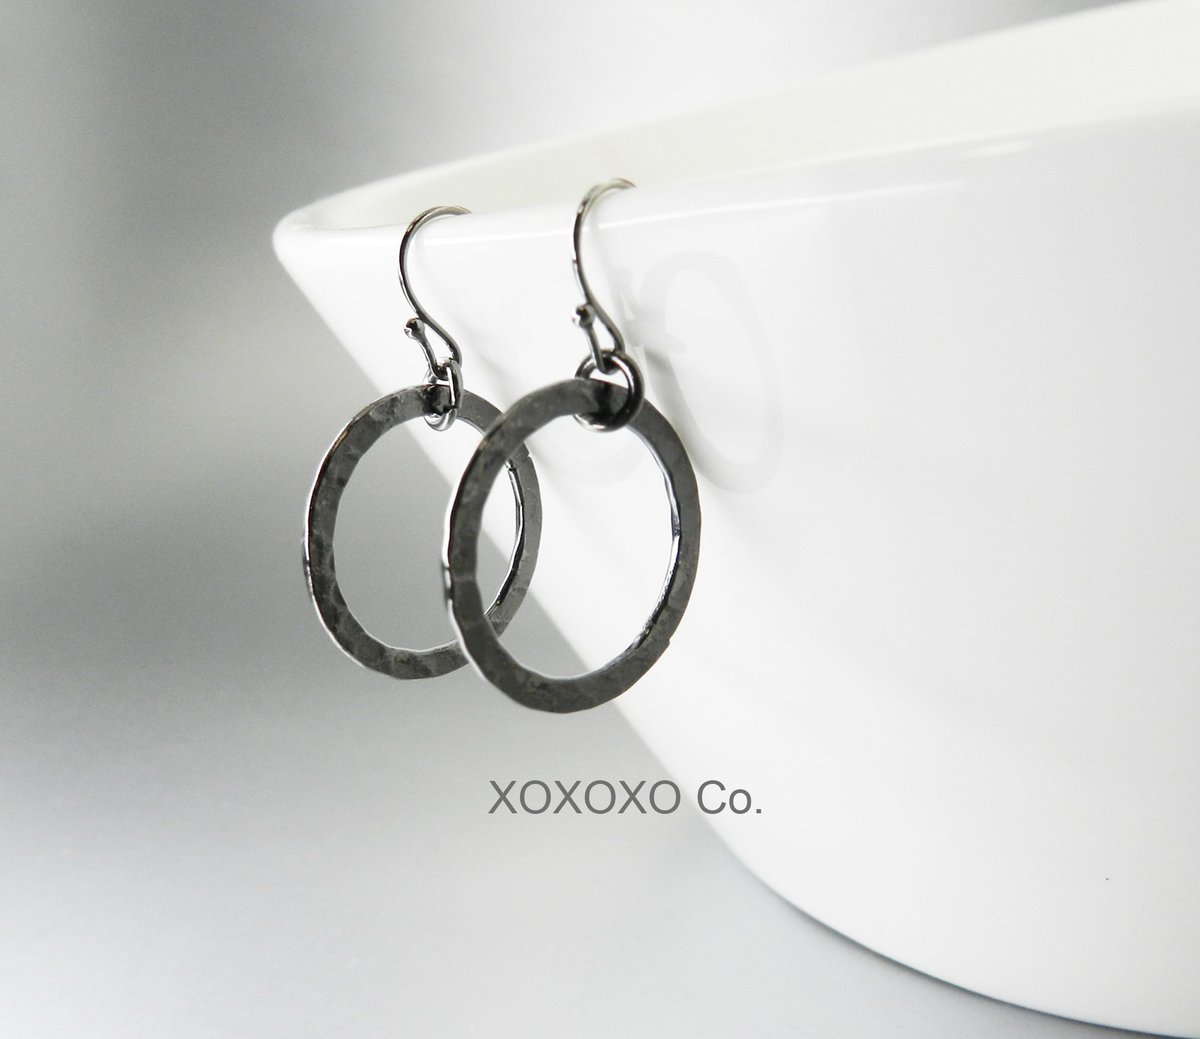 Black Hoop Earrings Gunmetal Hammered Metal Hoops Circle Drops  #giftsforher #style #handmade #Etsy #fashion #shopsmall #jewelryblogger #christmasgifts #handmadejewelry